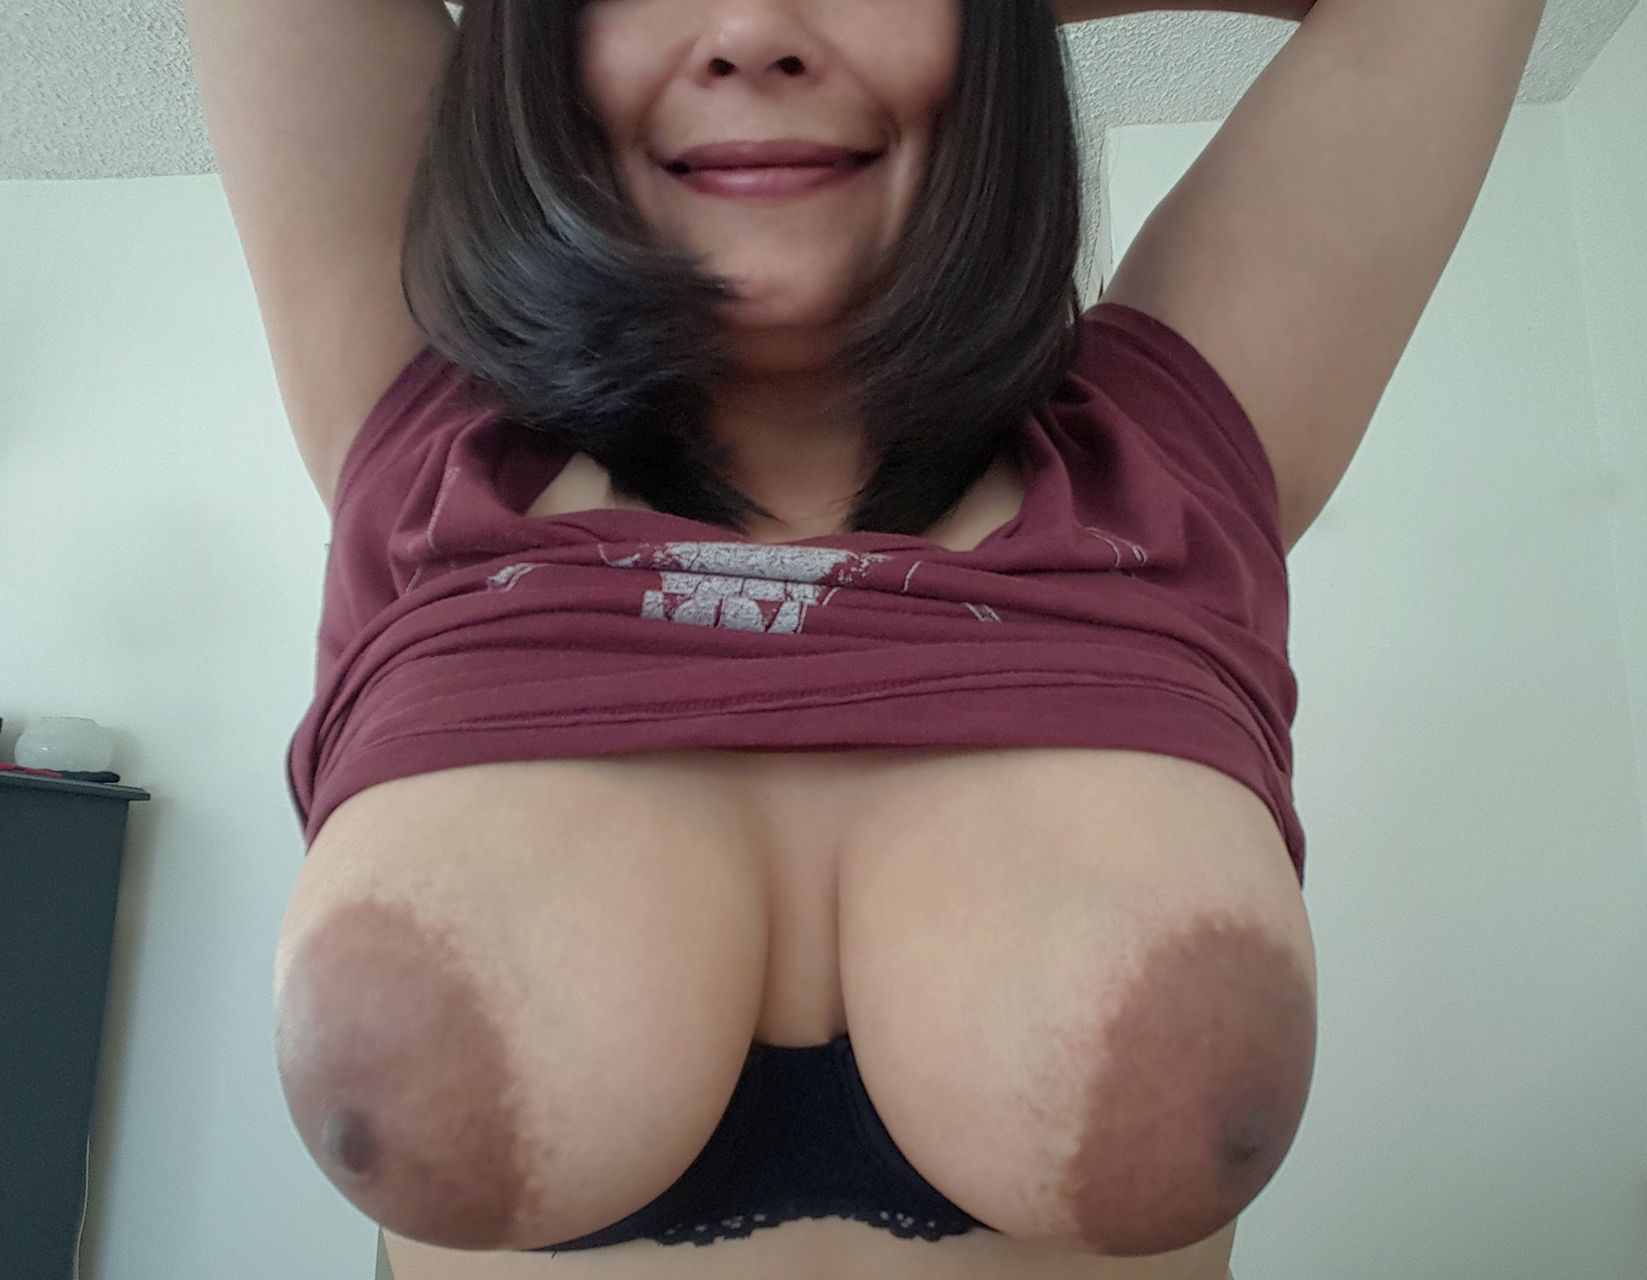 Big boobs latinas natural pics him next